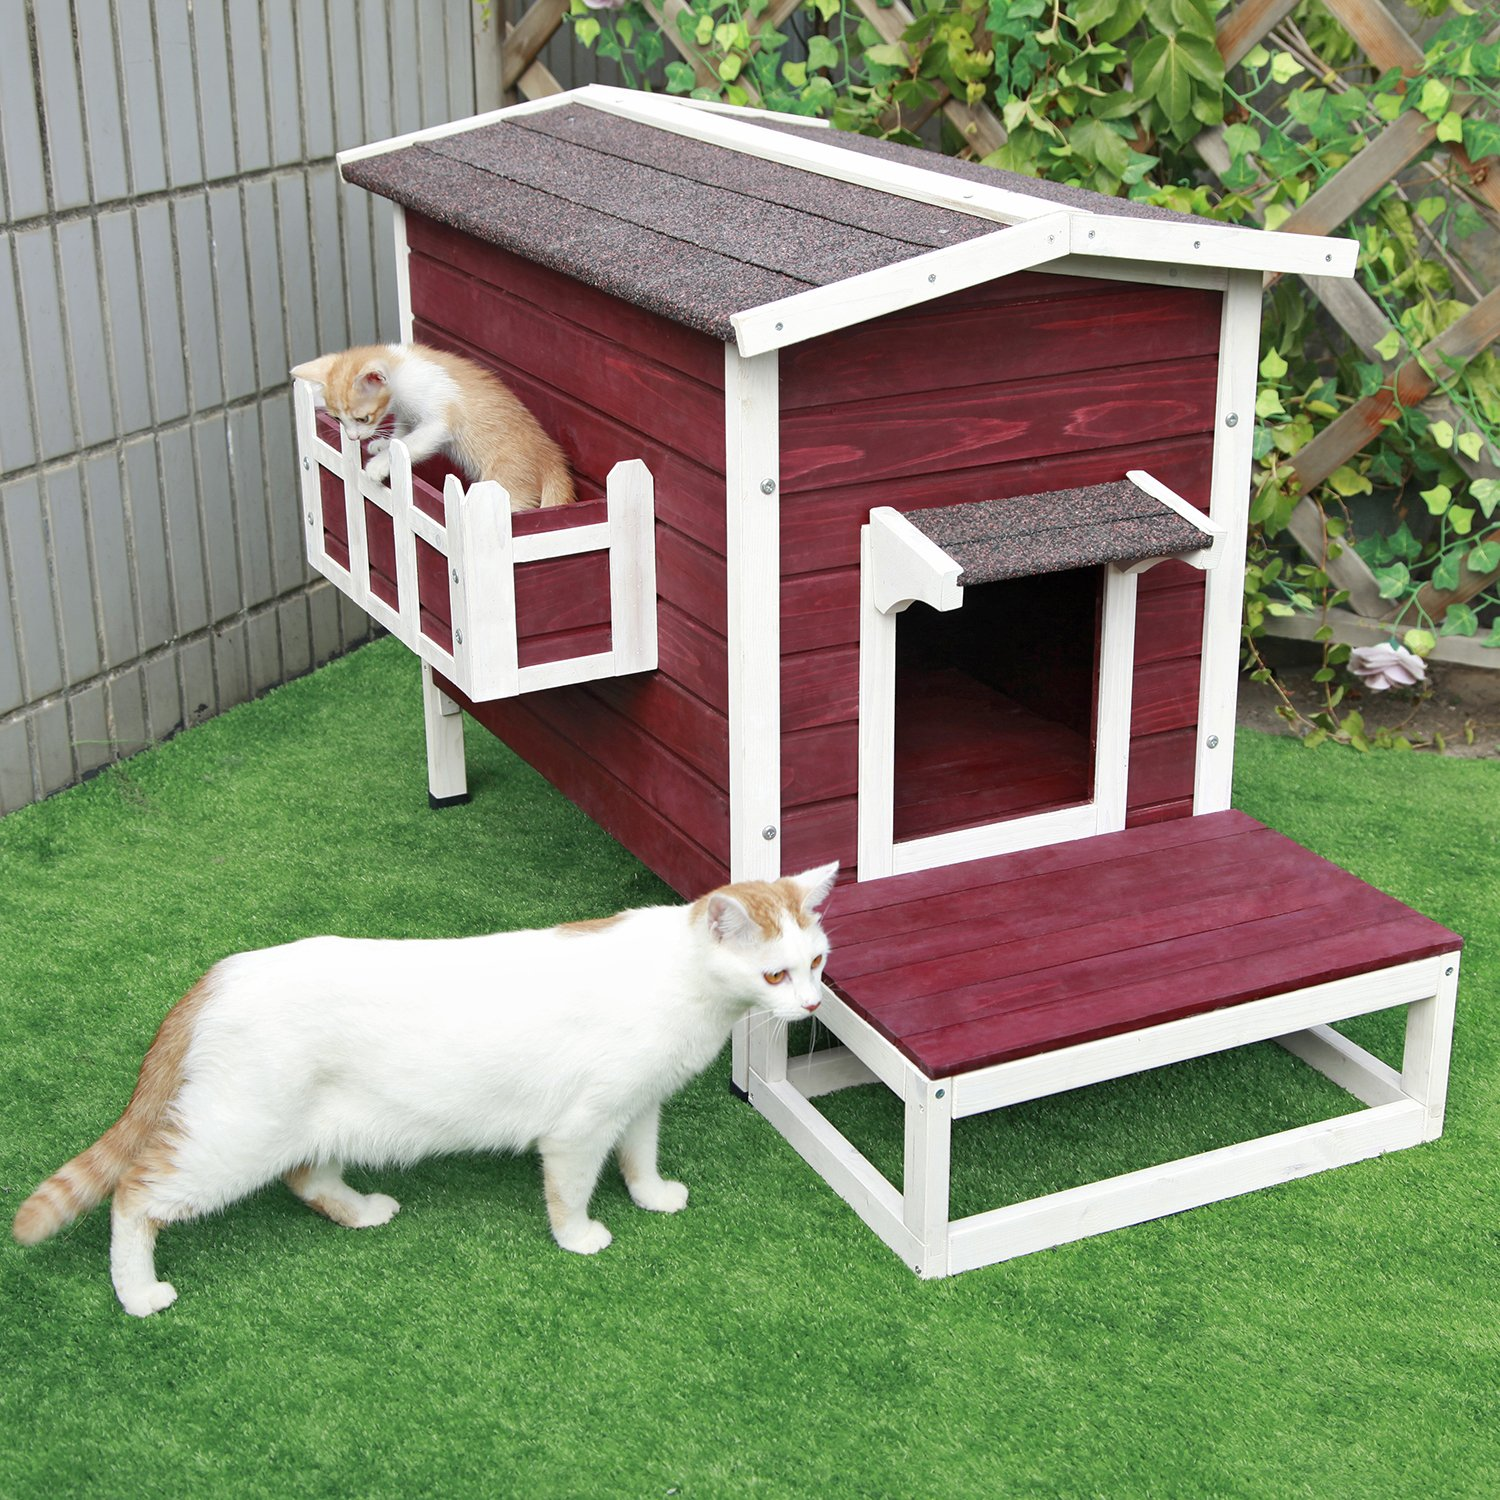 Cat Shelter Large,Cat House / Condo With Escape Door